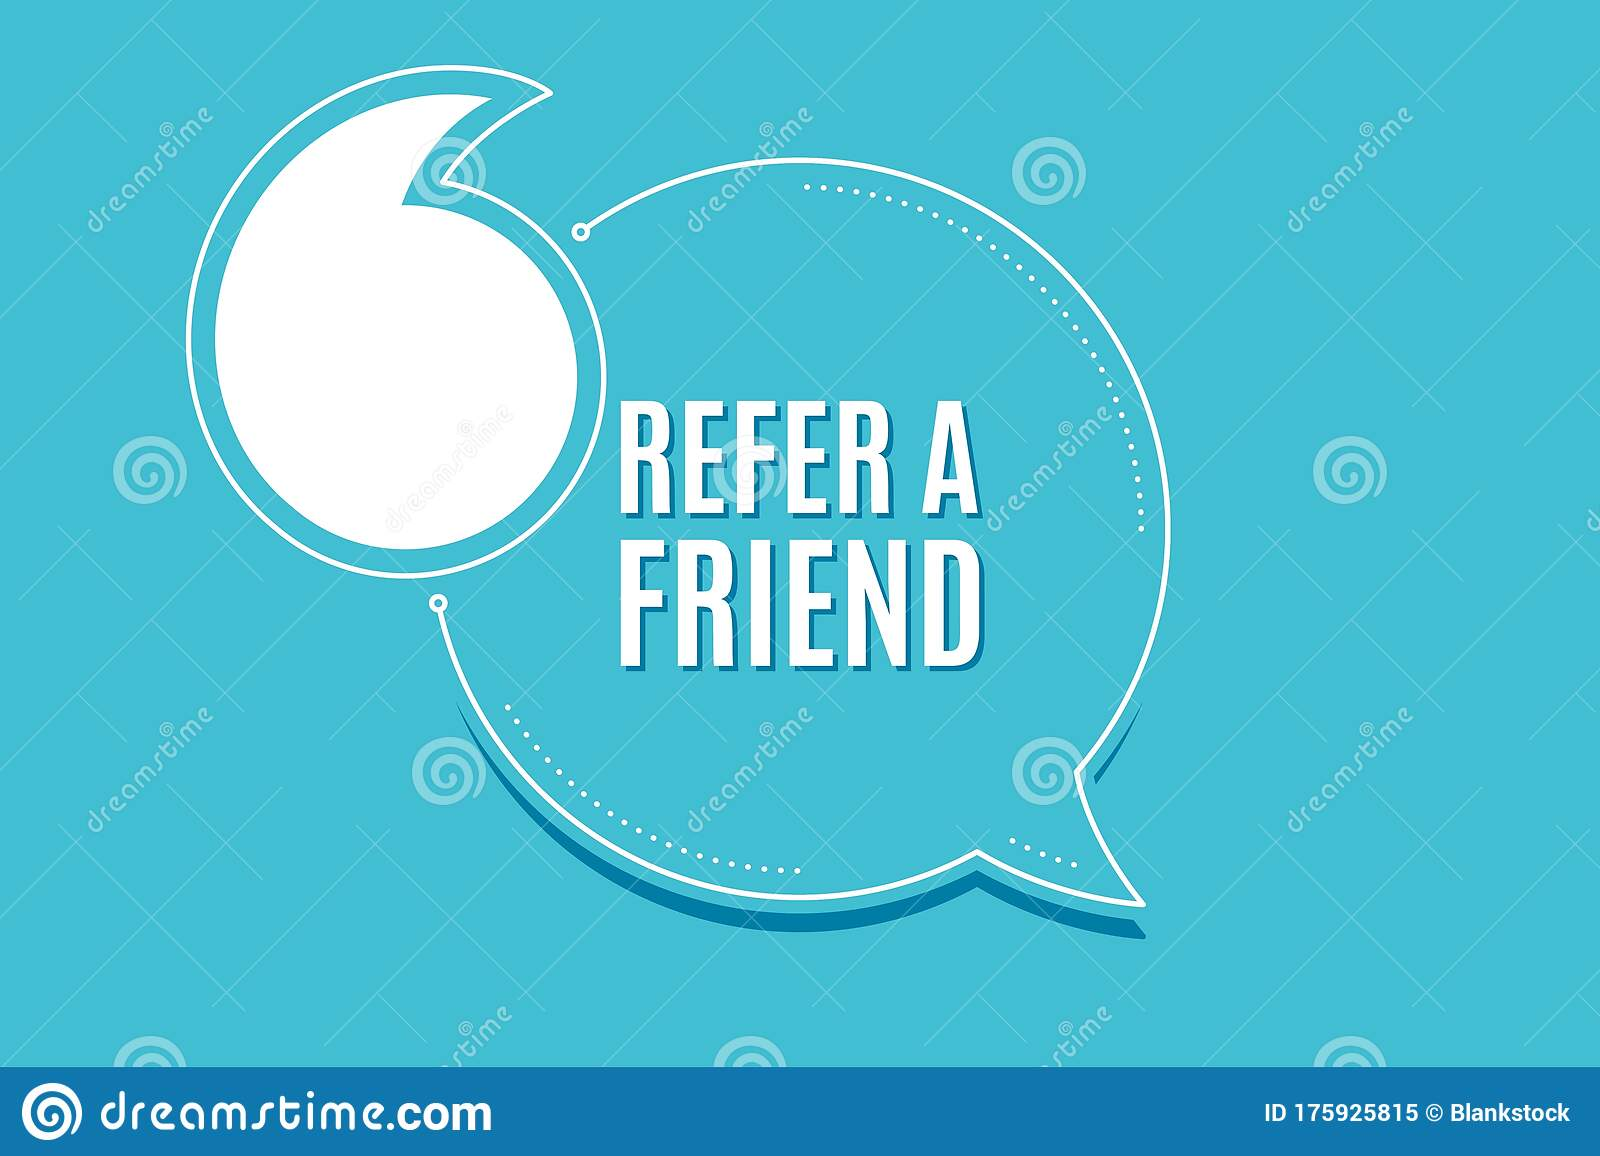 Program template referral Real Life